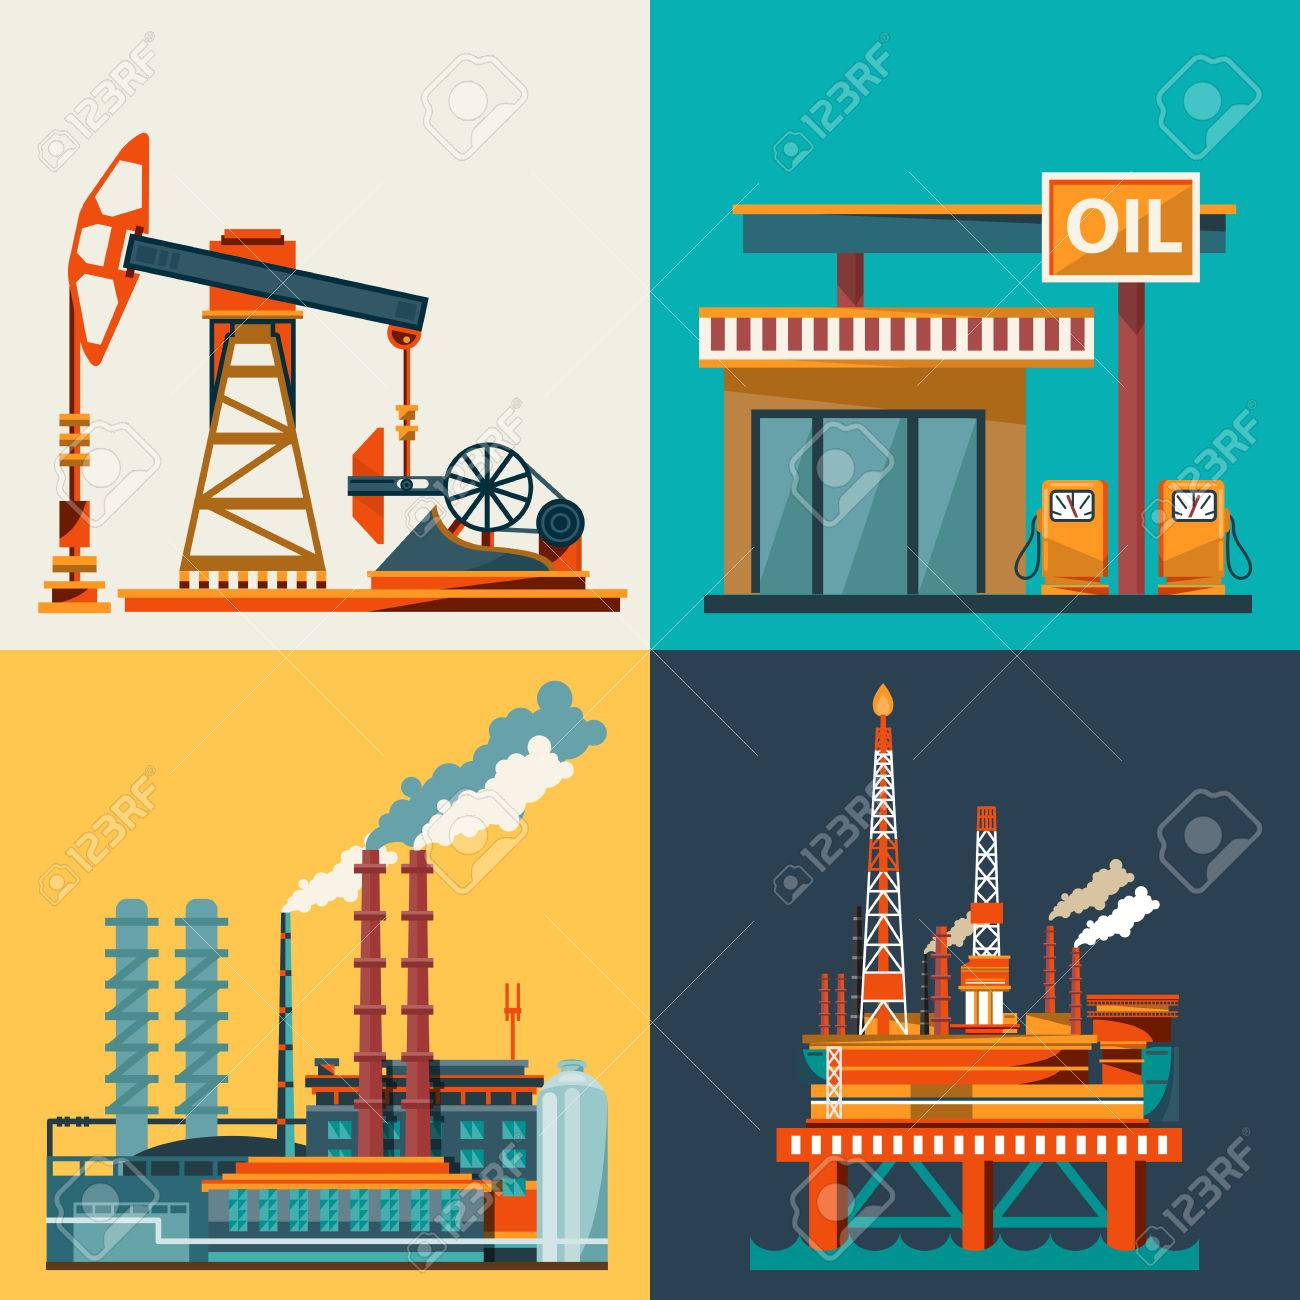 Oil industry business concept of gasoline diesel production fuel distribution and transportation icons composition illustration - 53103536